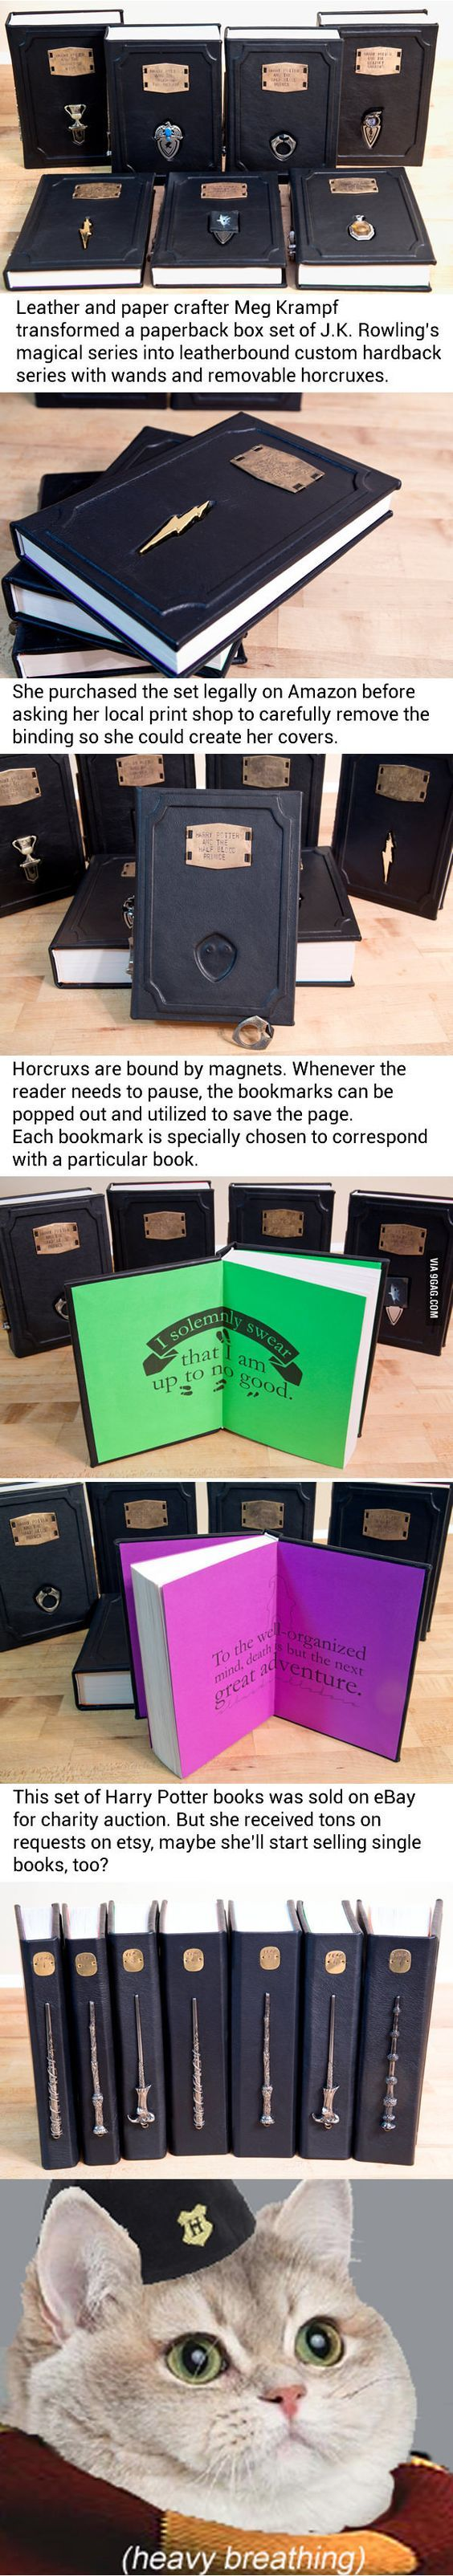 """Leatherbound """"Harry Potter"""" book comes with horcrux bookmarks, shut up and take my sickles!"""